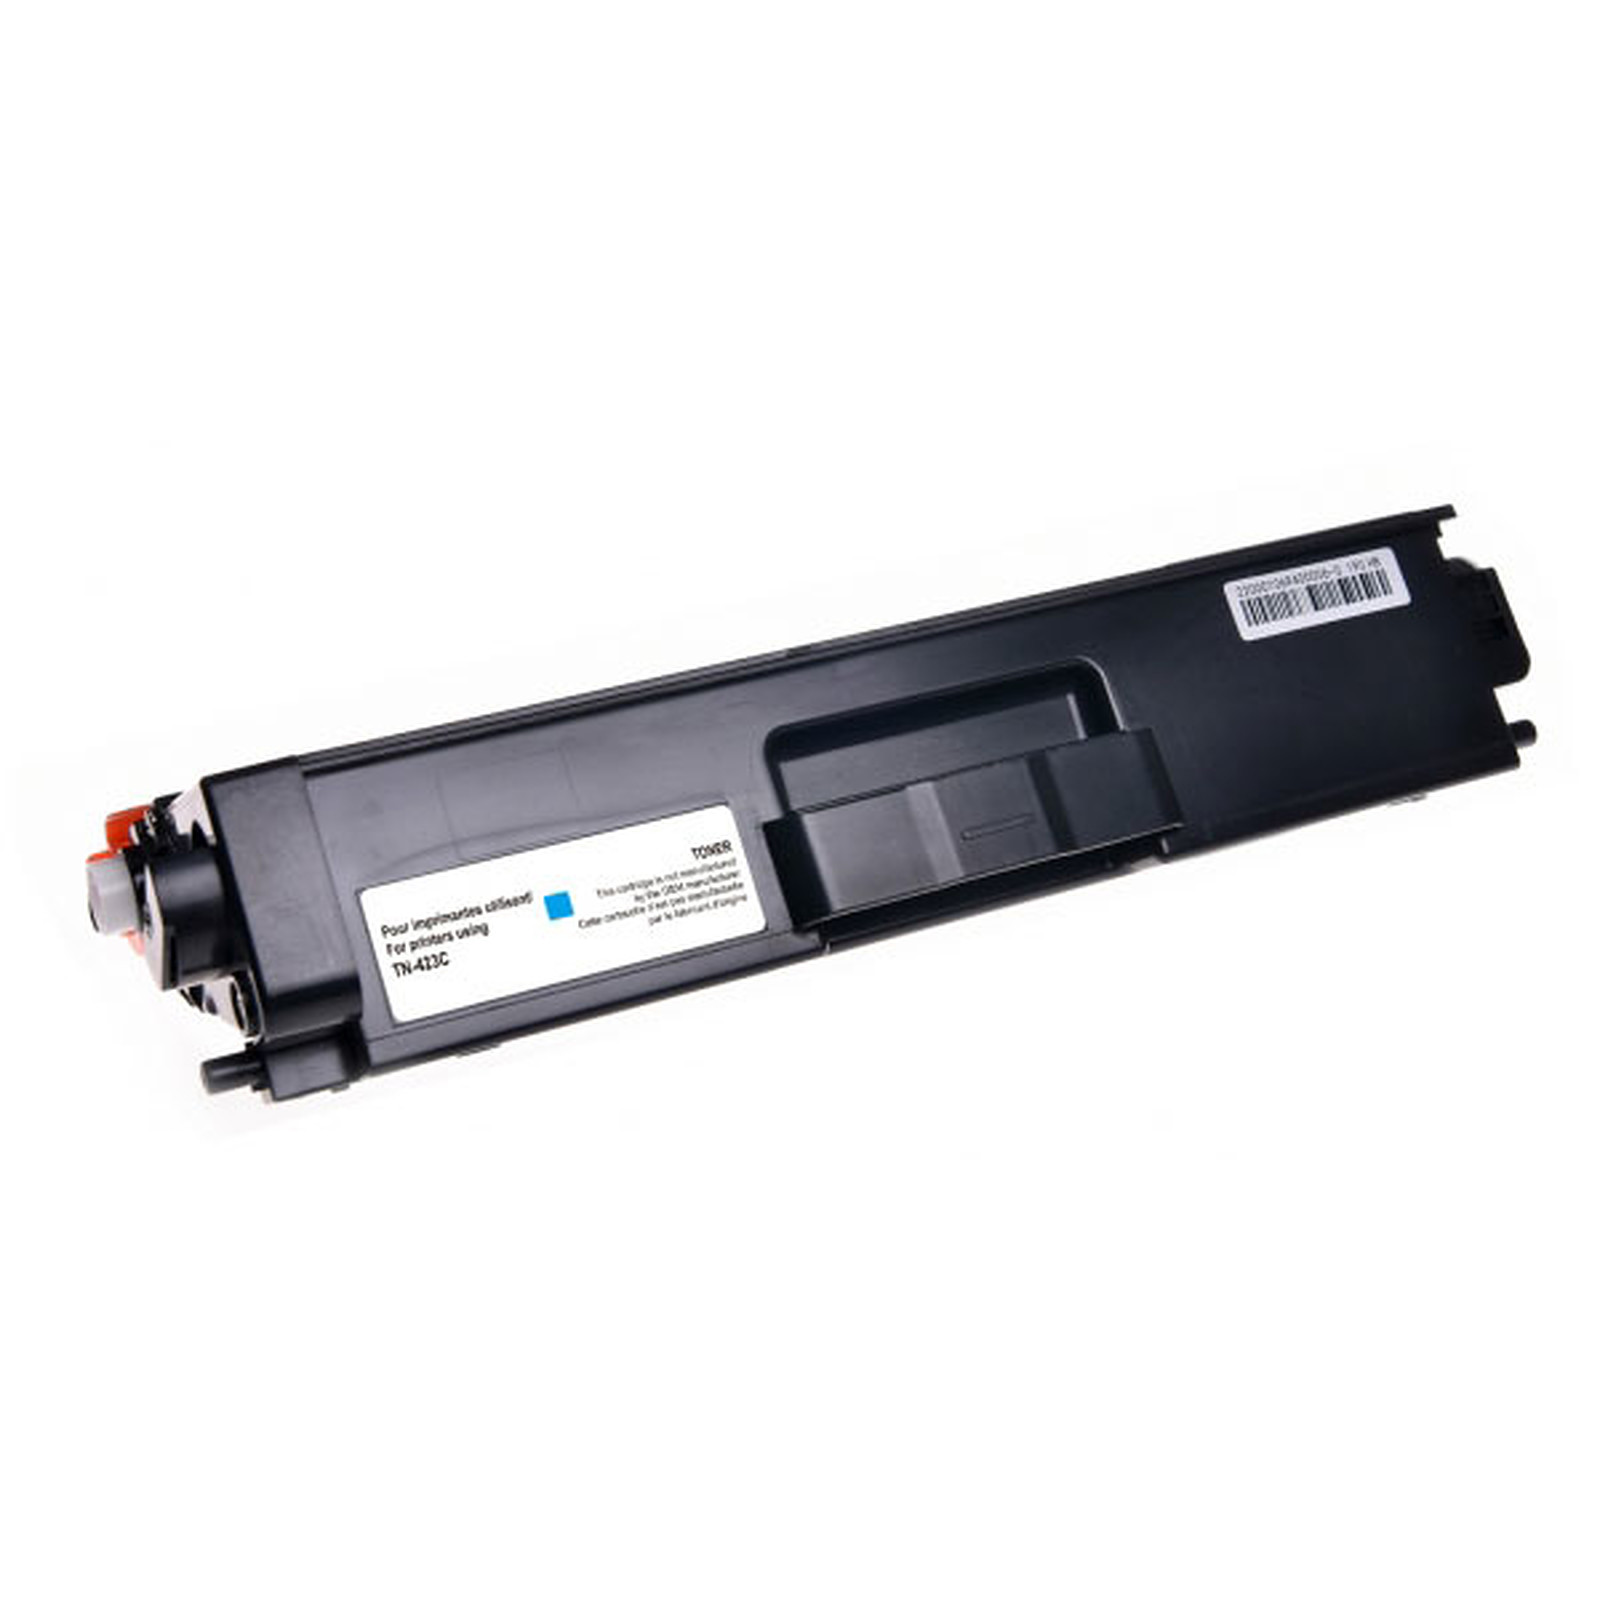 UPrint TN421/423/426-C (Cyan)